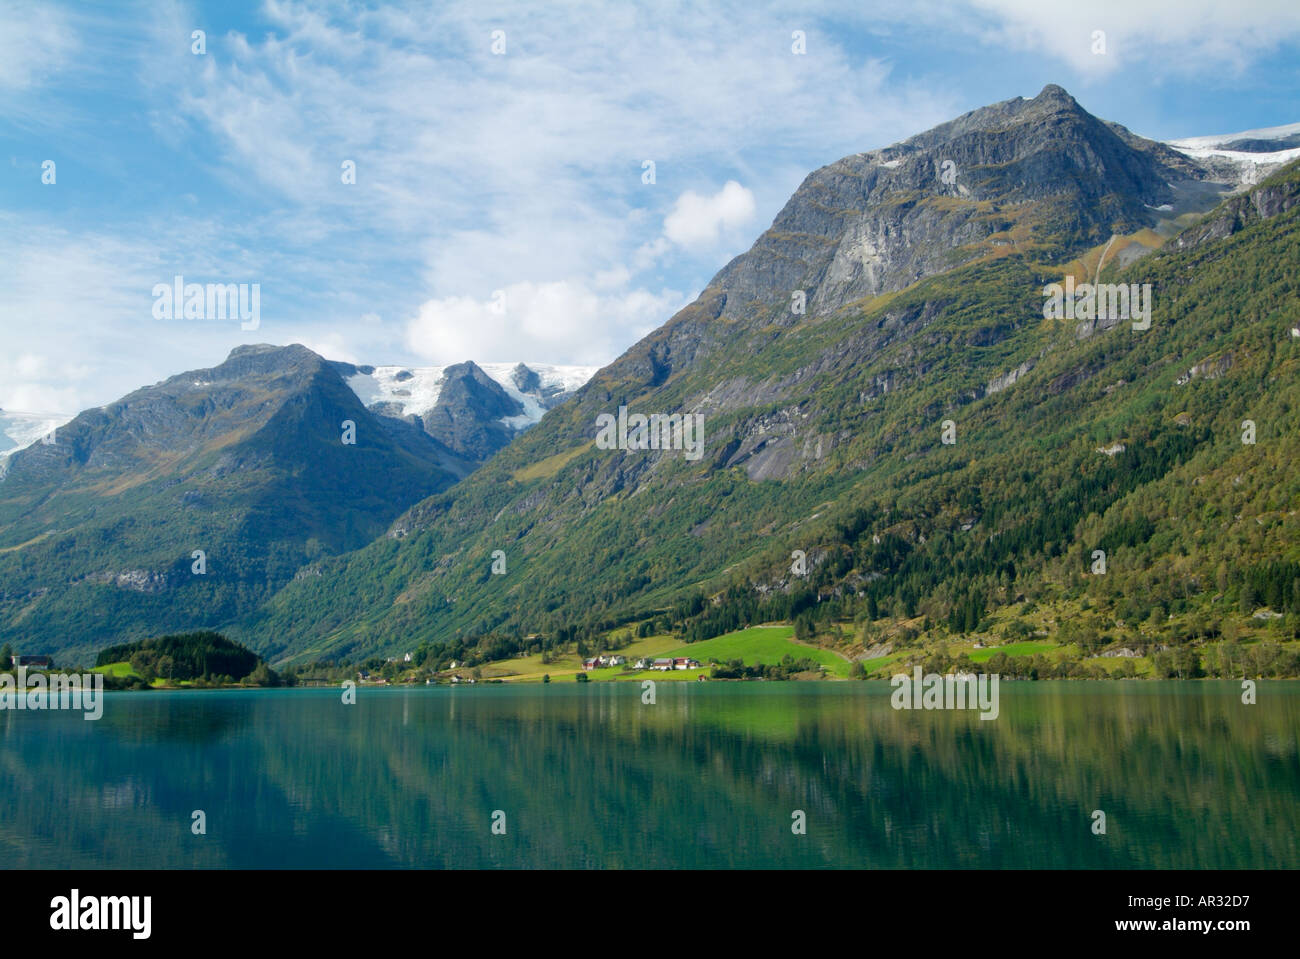 The Olden Valley lies at the bottom of the Briksdalbreen Glacier Sogn og Fjordane Fjordland West Norway Europe - Stock Image